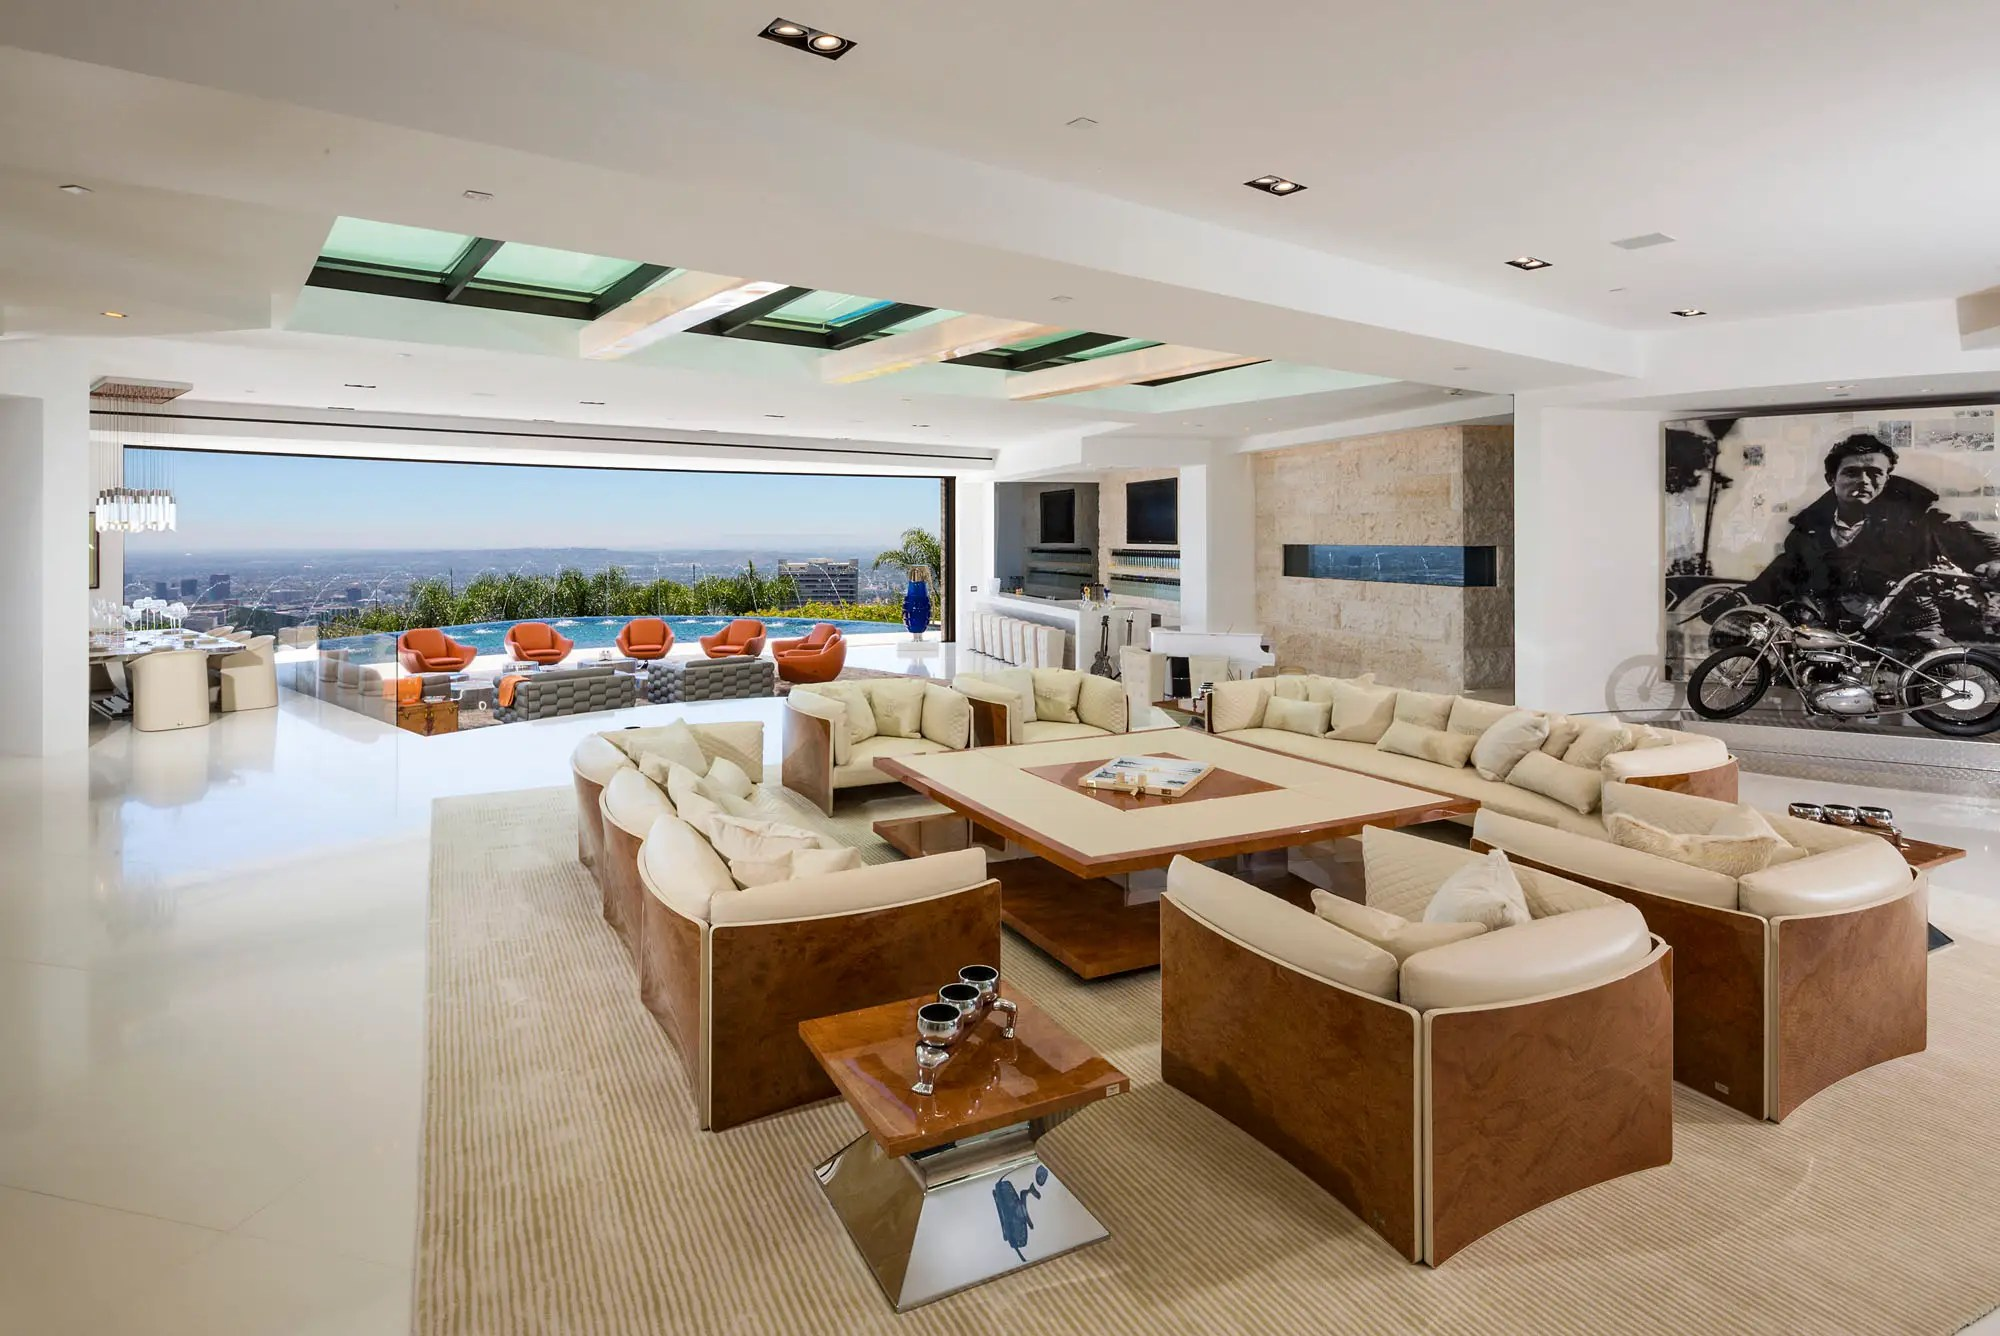 The living room has a skylight and looks out over the horizon.